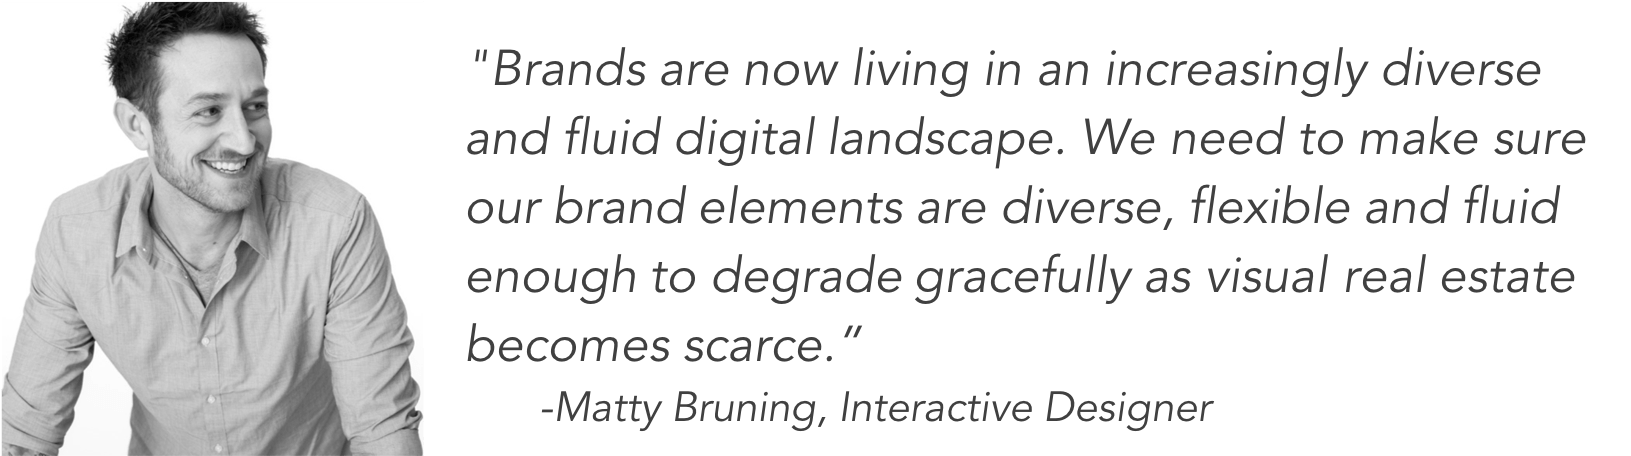 Brands are now living in an increasingly diverse and fluid digital landscape. We need to make sure our brand elements are diverse, flexible and fluid enough to degrade gracefully as visual real estate becomes scarce. - Matty Bruning, Interactive Designer